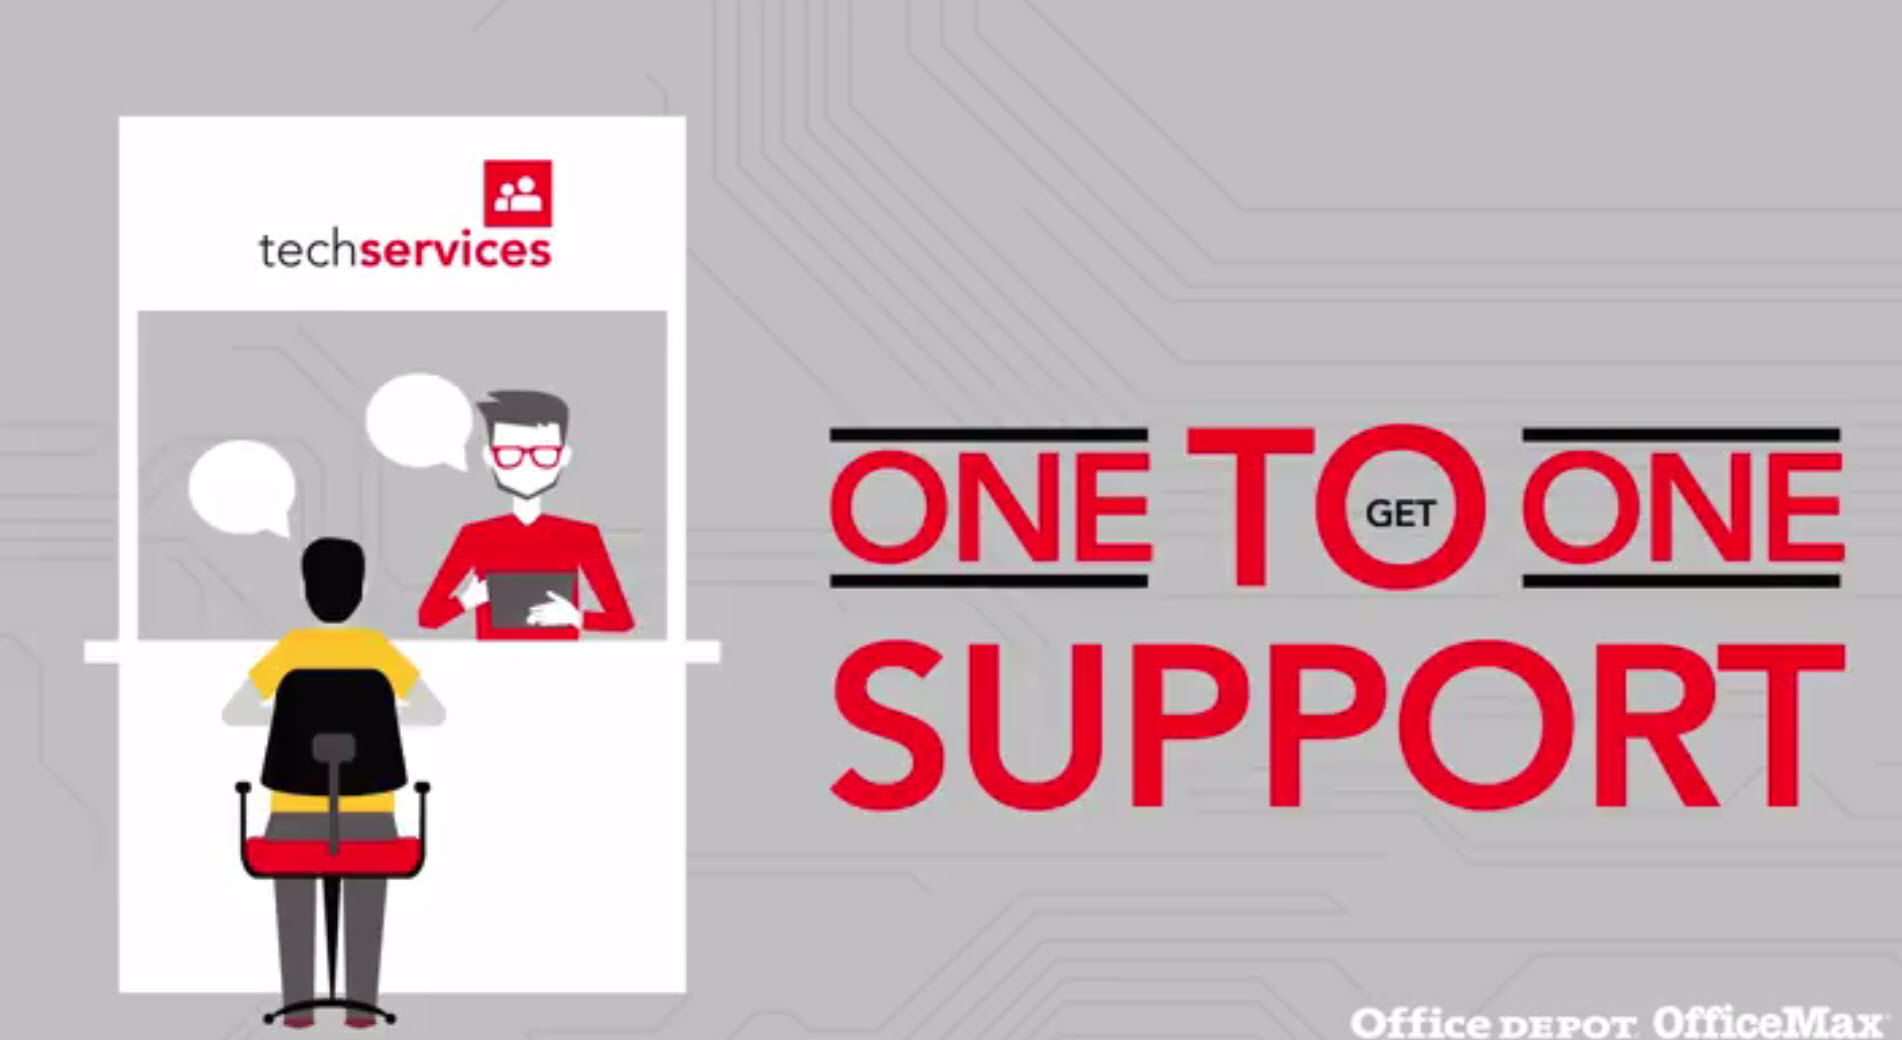 Tech Services - Cover Image - 1-to-1 support (1)